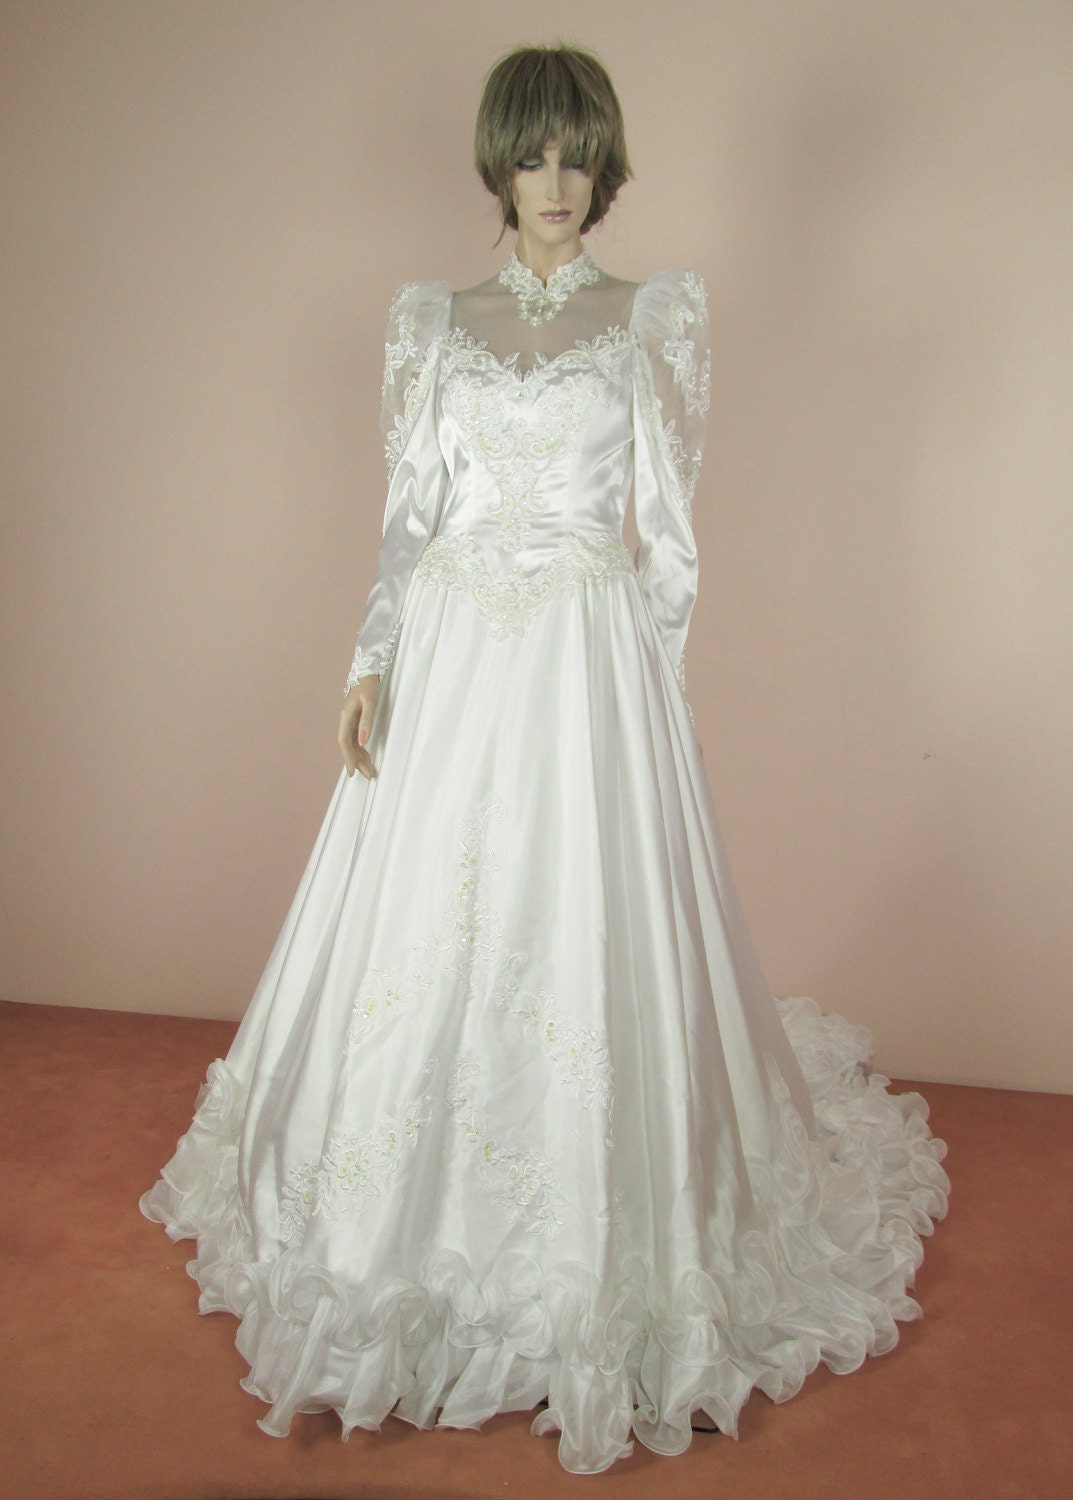 80s Vintage Clothing In The Uk Just Got Easier: White Wedding Dress 80s Vintage Bridal Gown From 1980s